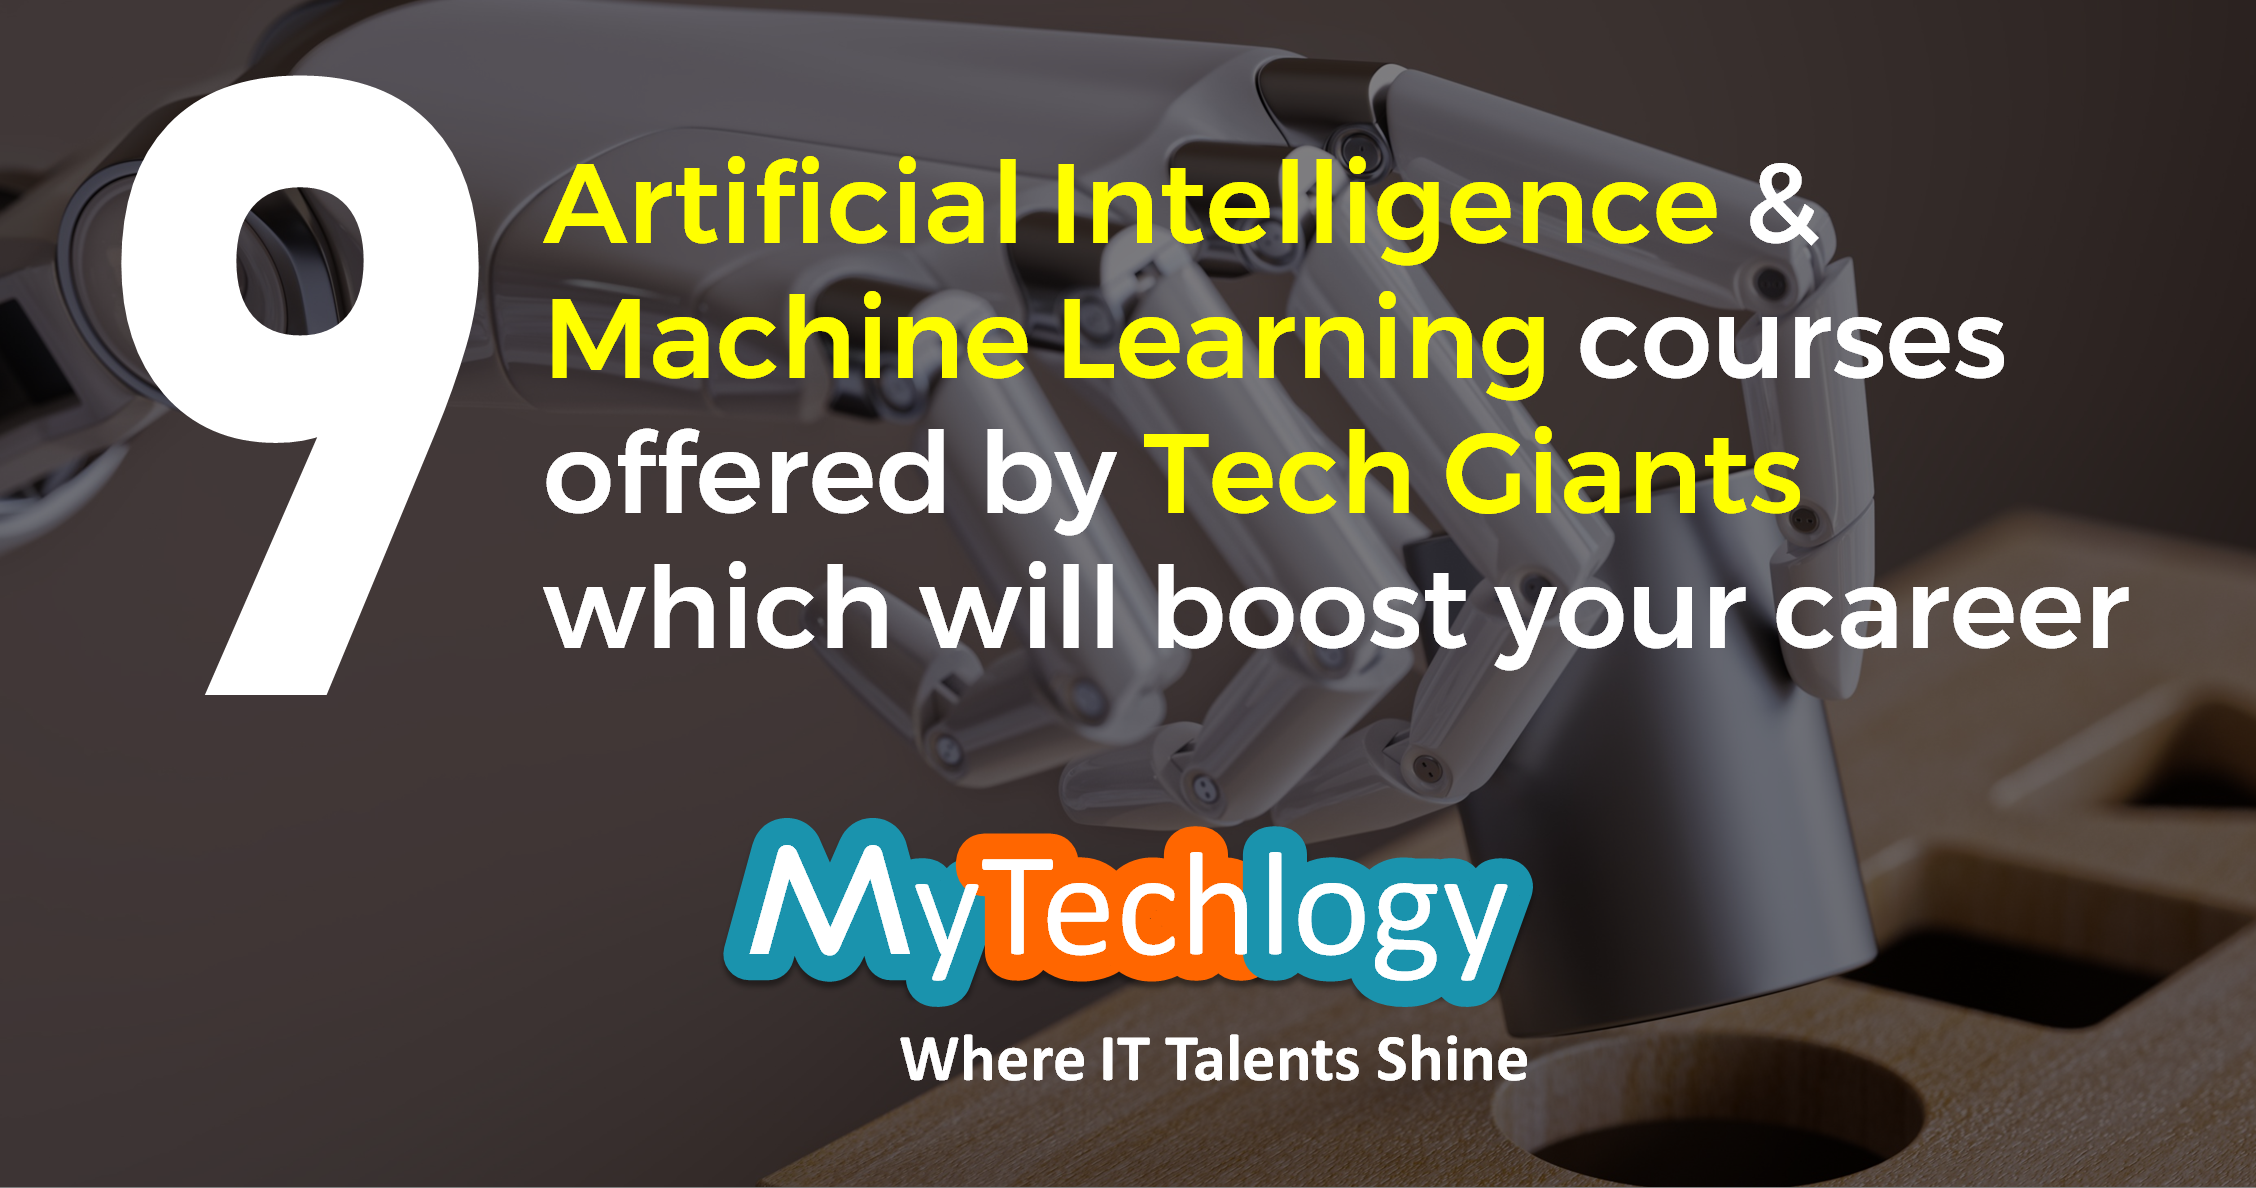 9 Artificial Intelligence and Machine Learning courses offered by Tech Giants which will boost your career - Image 1